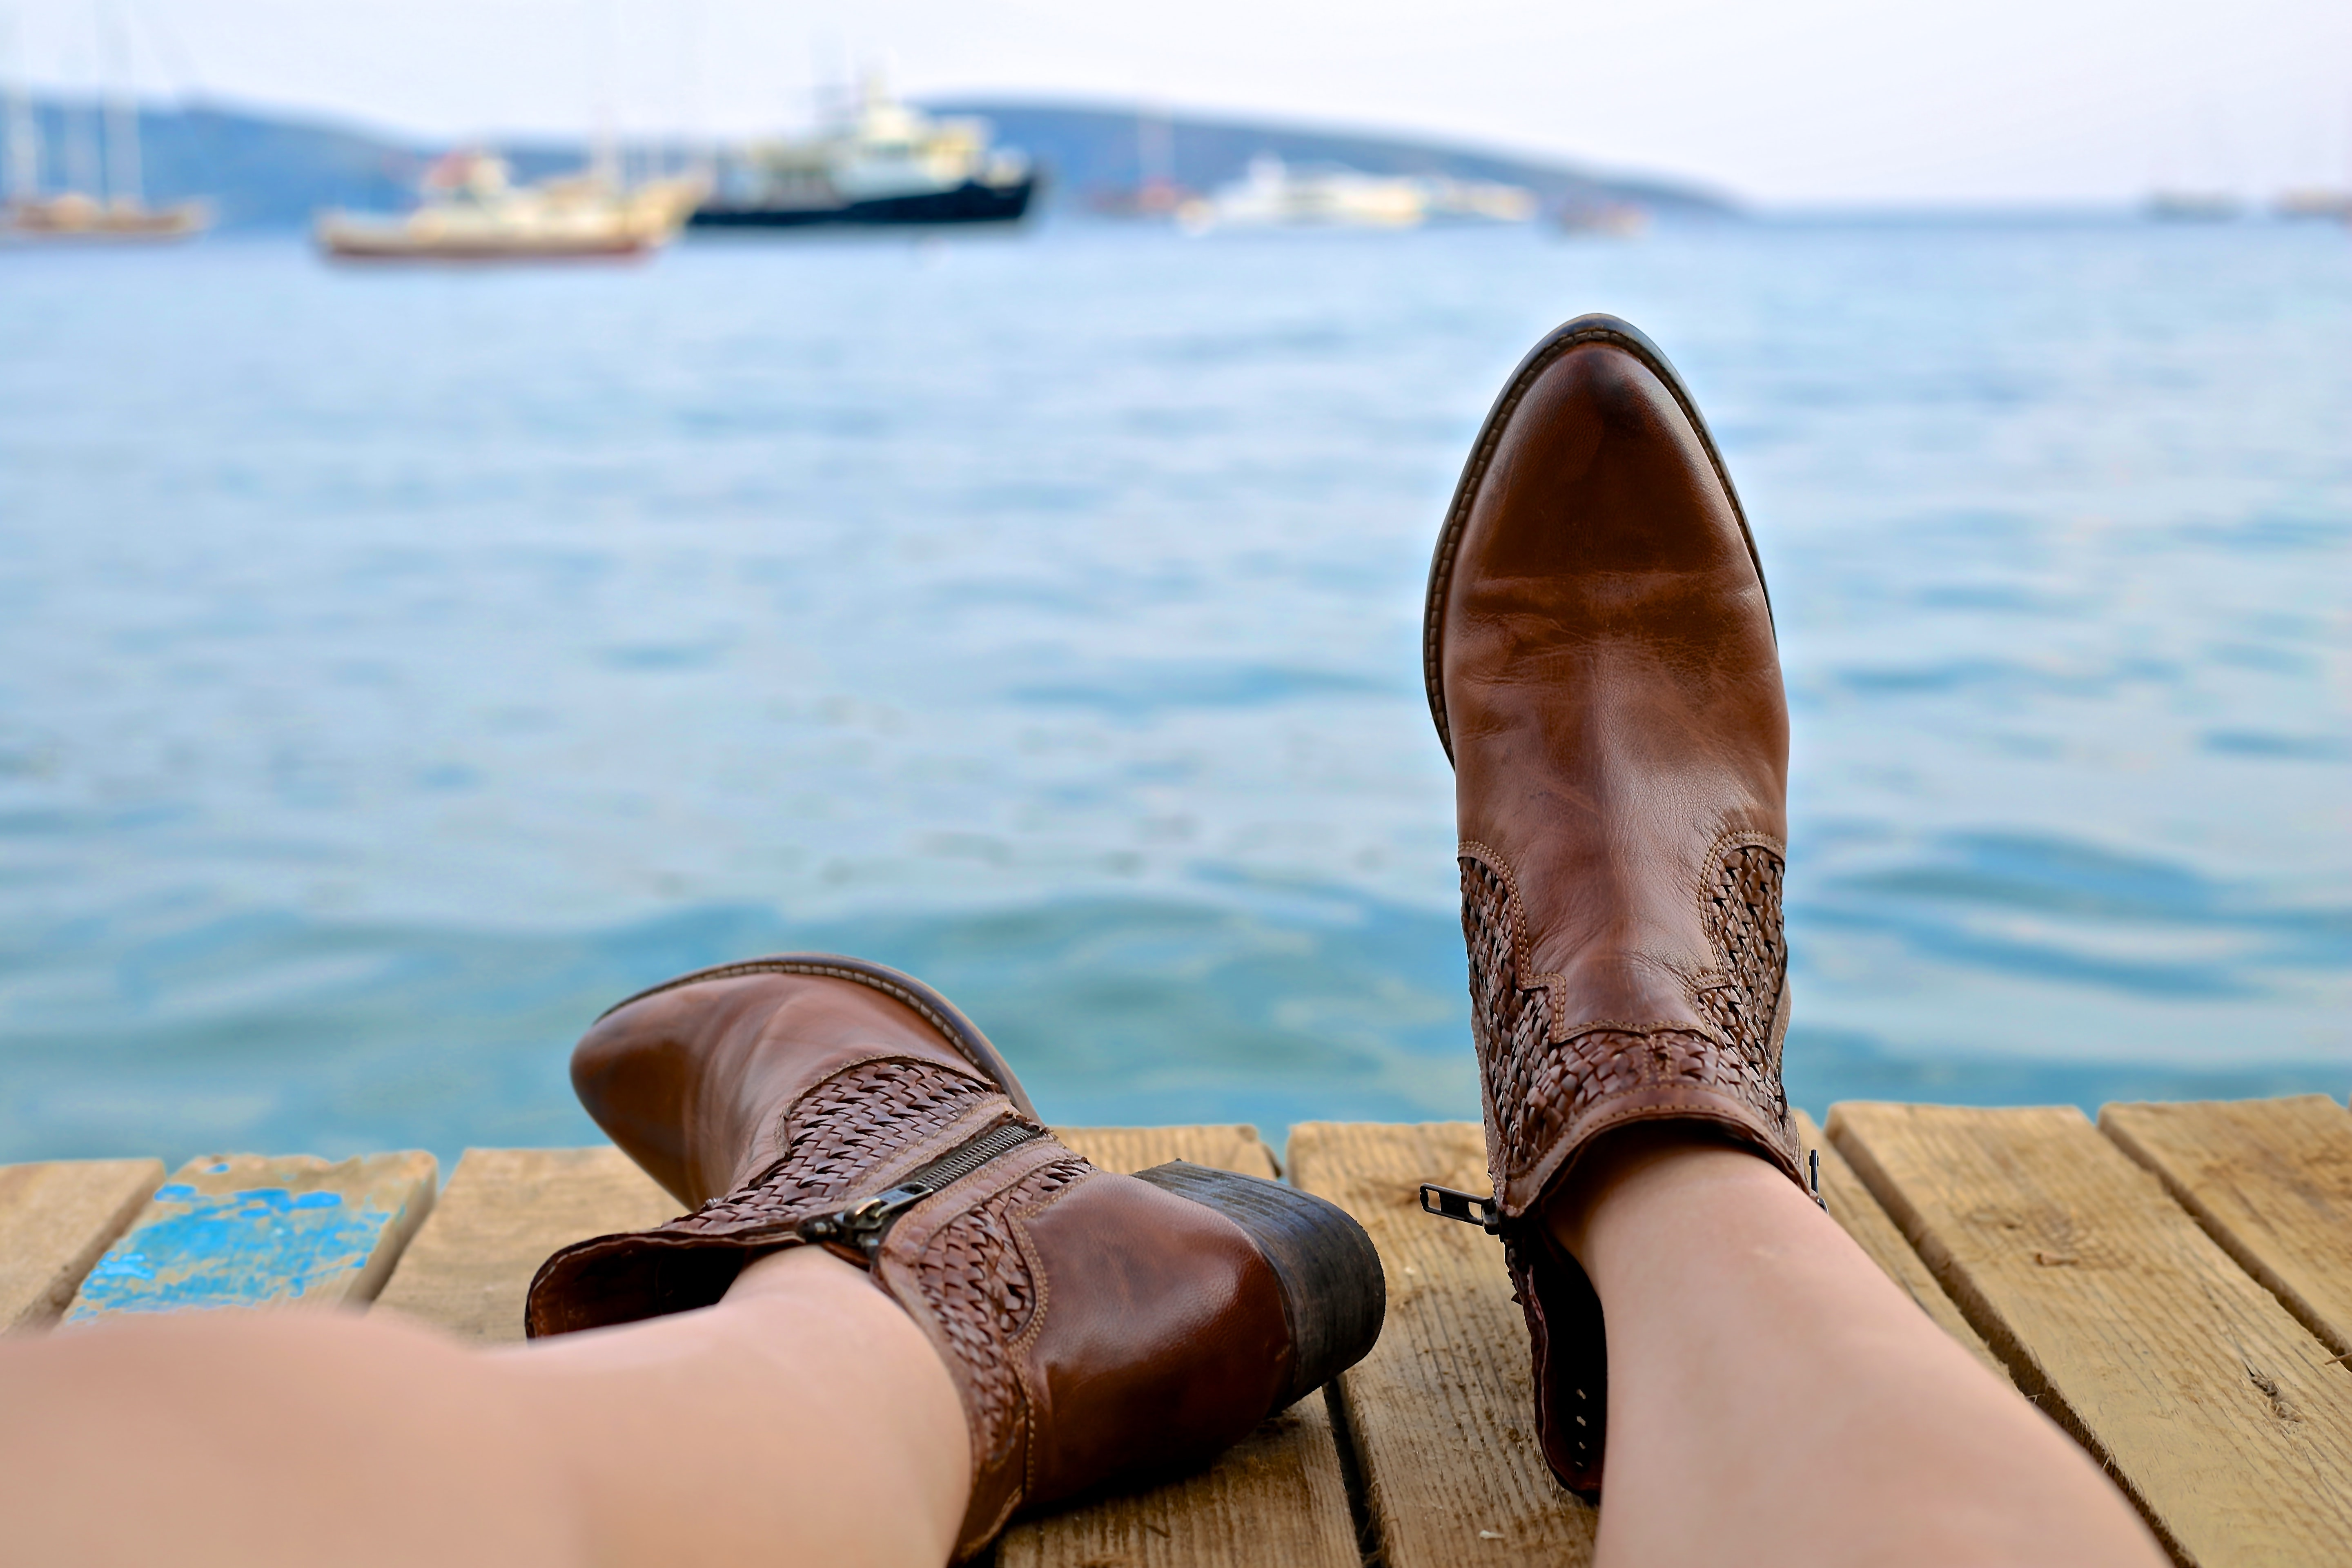 person wearing brown leather side-zip boots sits on brown wooden pier near body of water during daytime